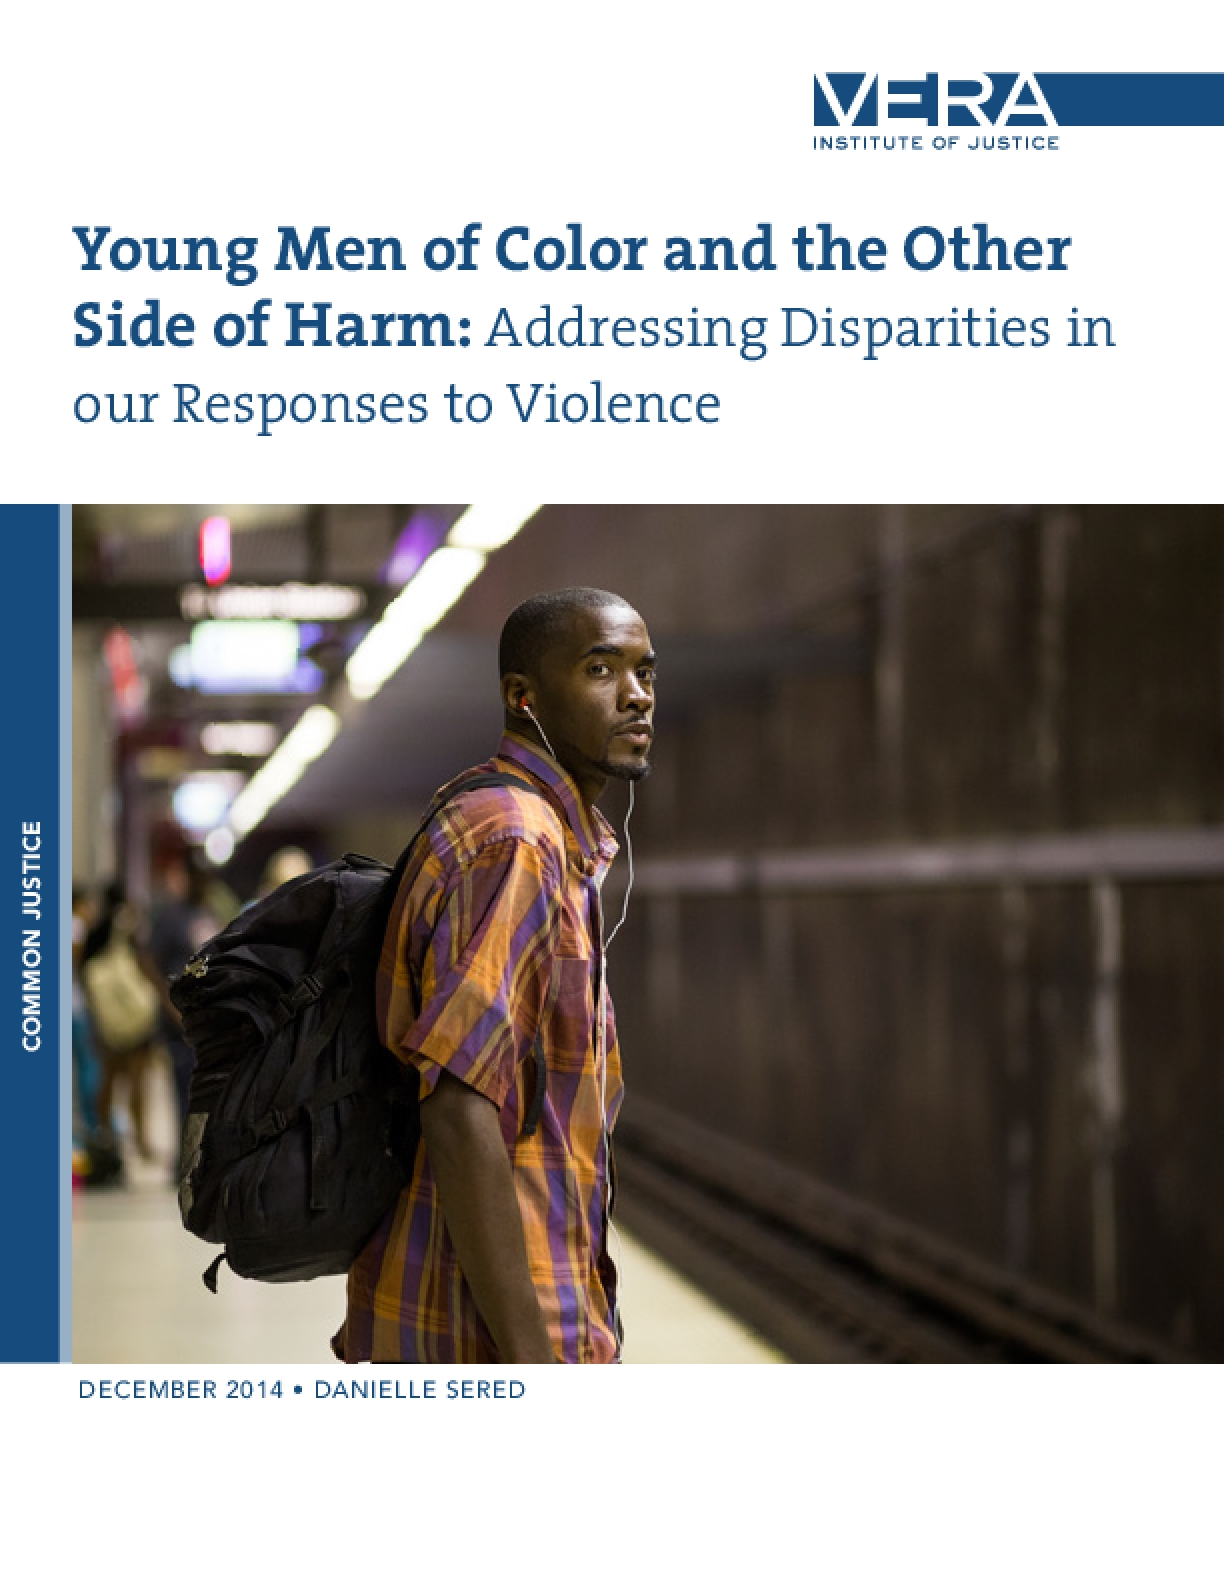 Young Men of Color and the Other Side of Harm: Addressing Disparities in our Responses to Violence